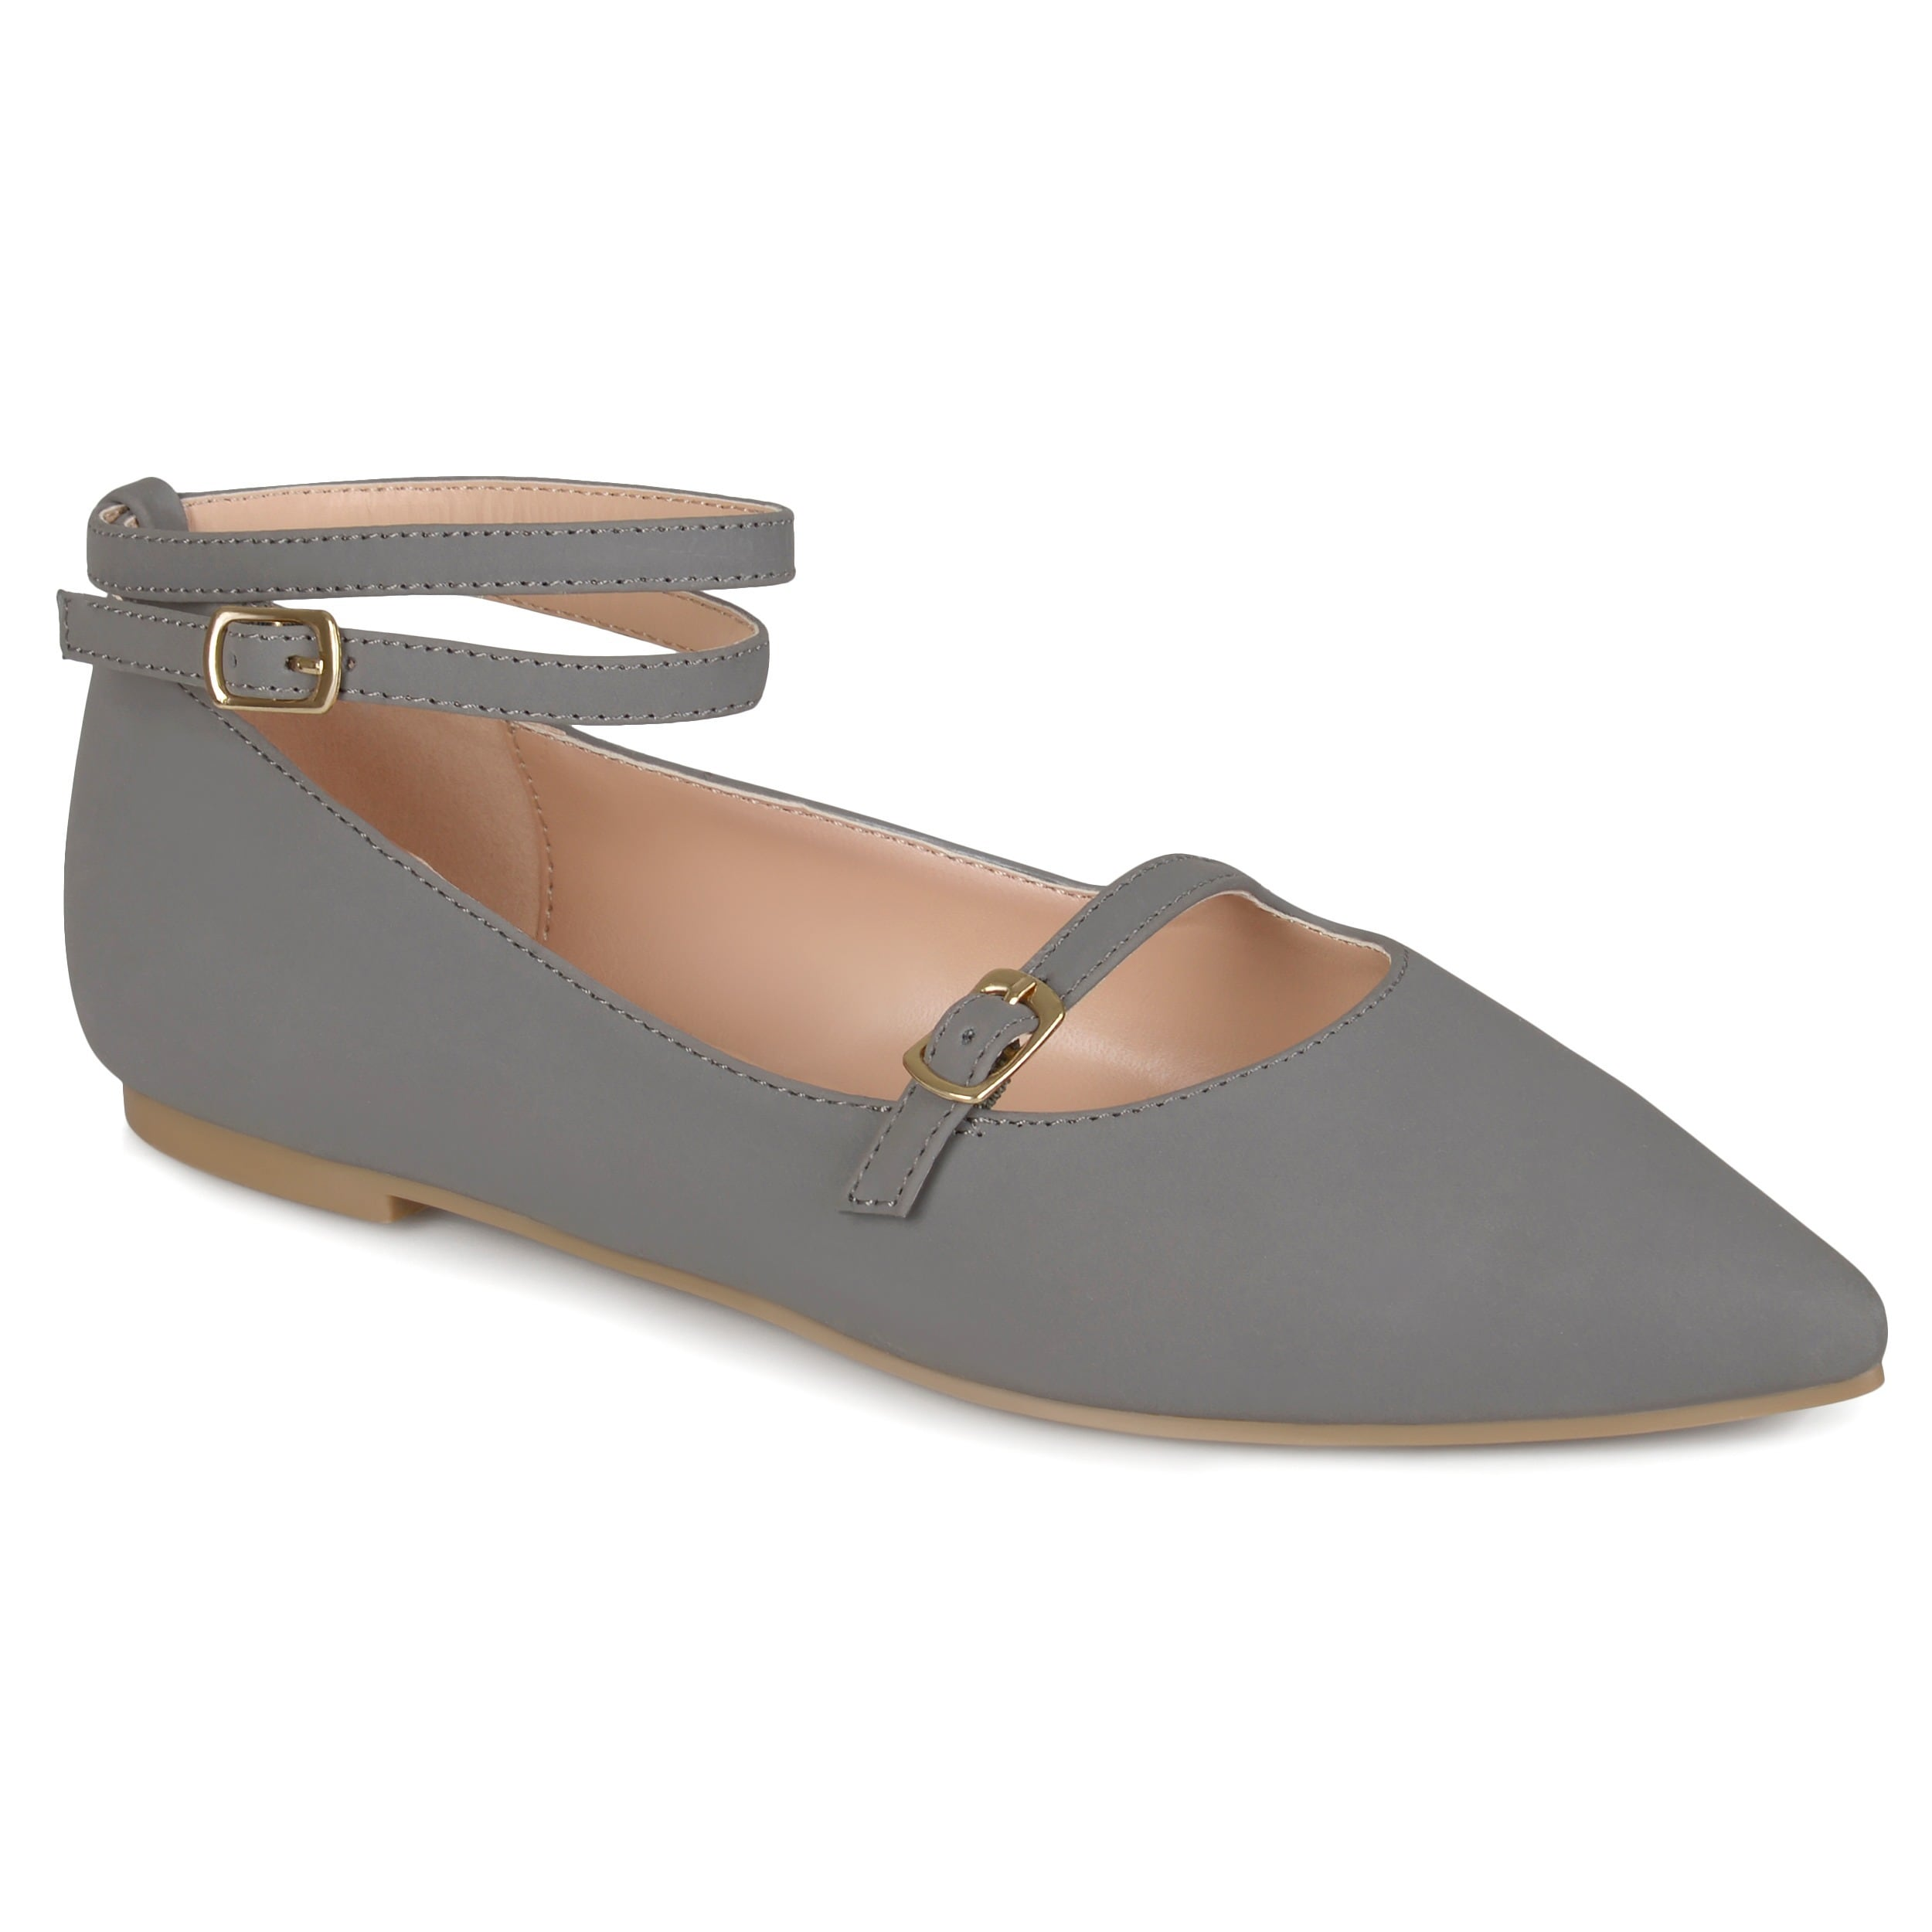 Journee Collection Nilly ... Women's Ankle Strap Flats hot sale online lSQIx